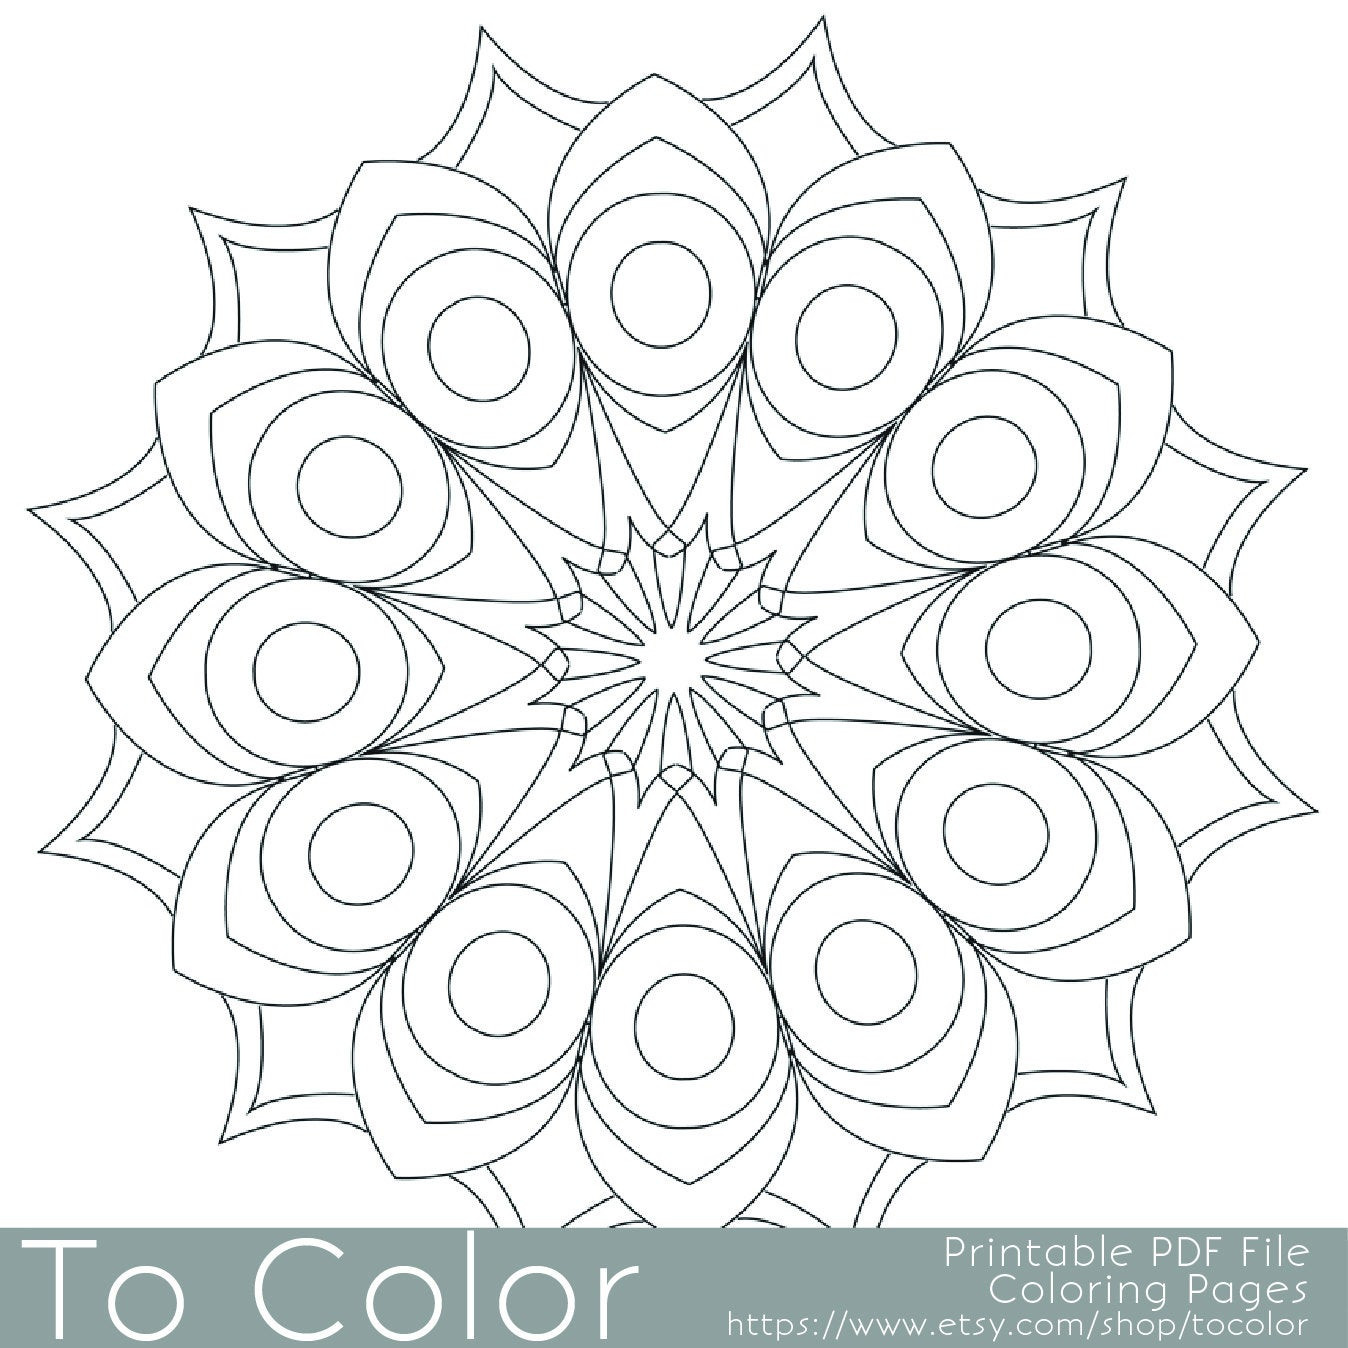 Best ideas about Easy Printable Coloring Pages For Adults . Save or Pin Printable Circular Mandala Easy Coloring Pages for Adults Big Now.